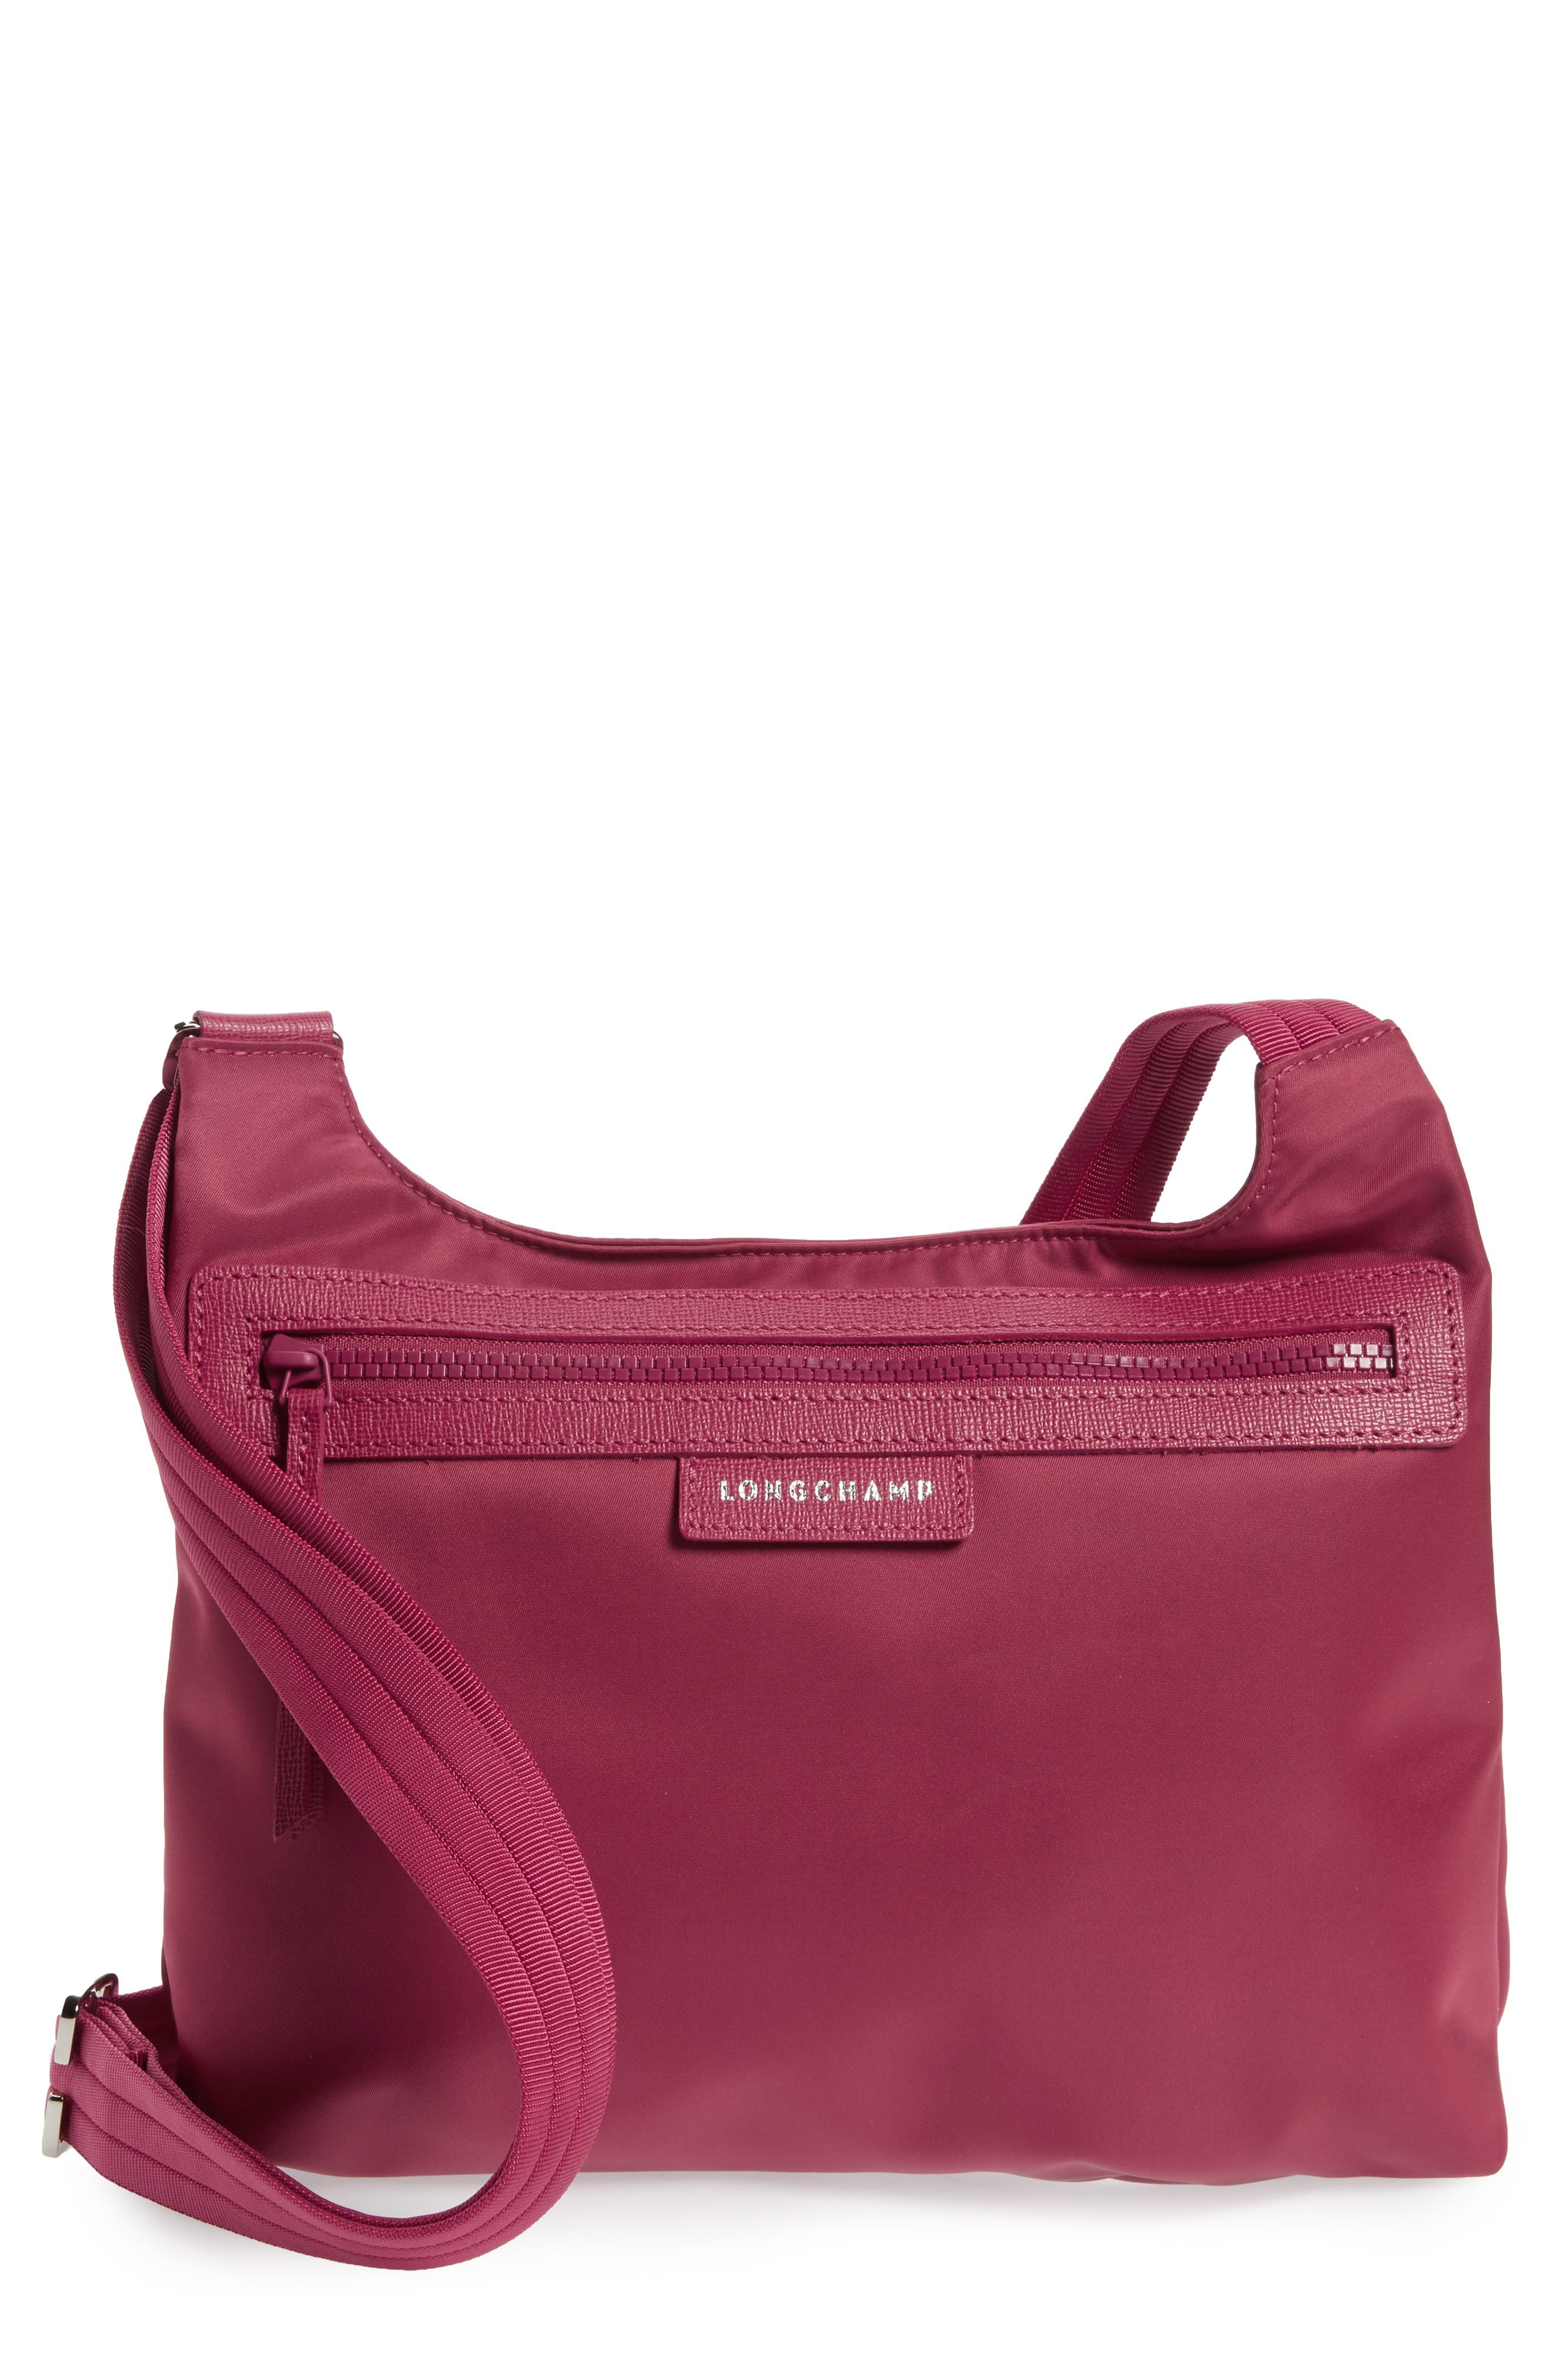 Main Image - Longchamp Le Pliage Neo Nylon Crossbody Bag